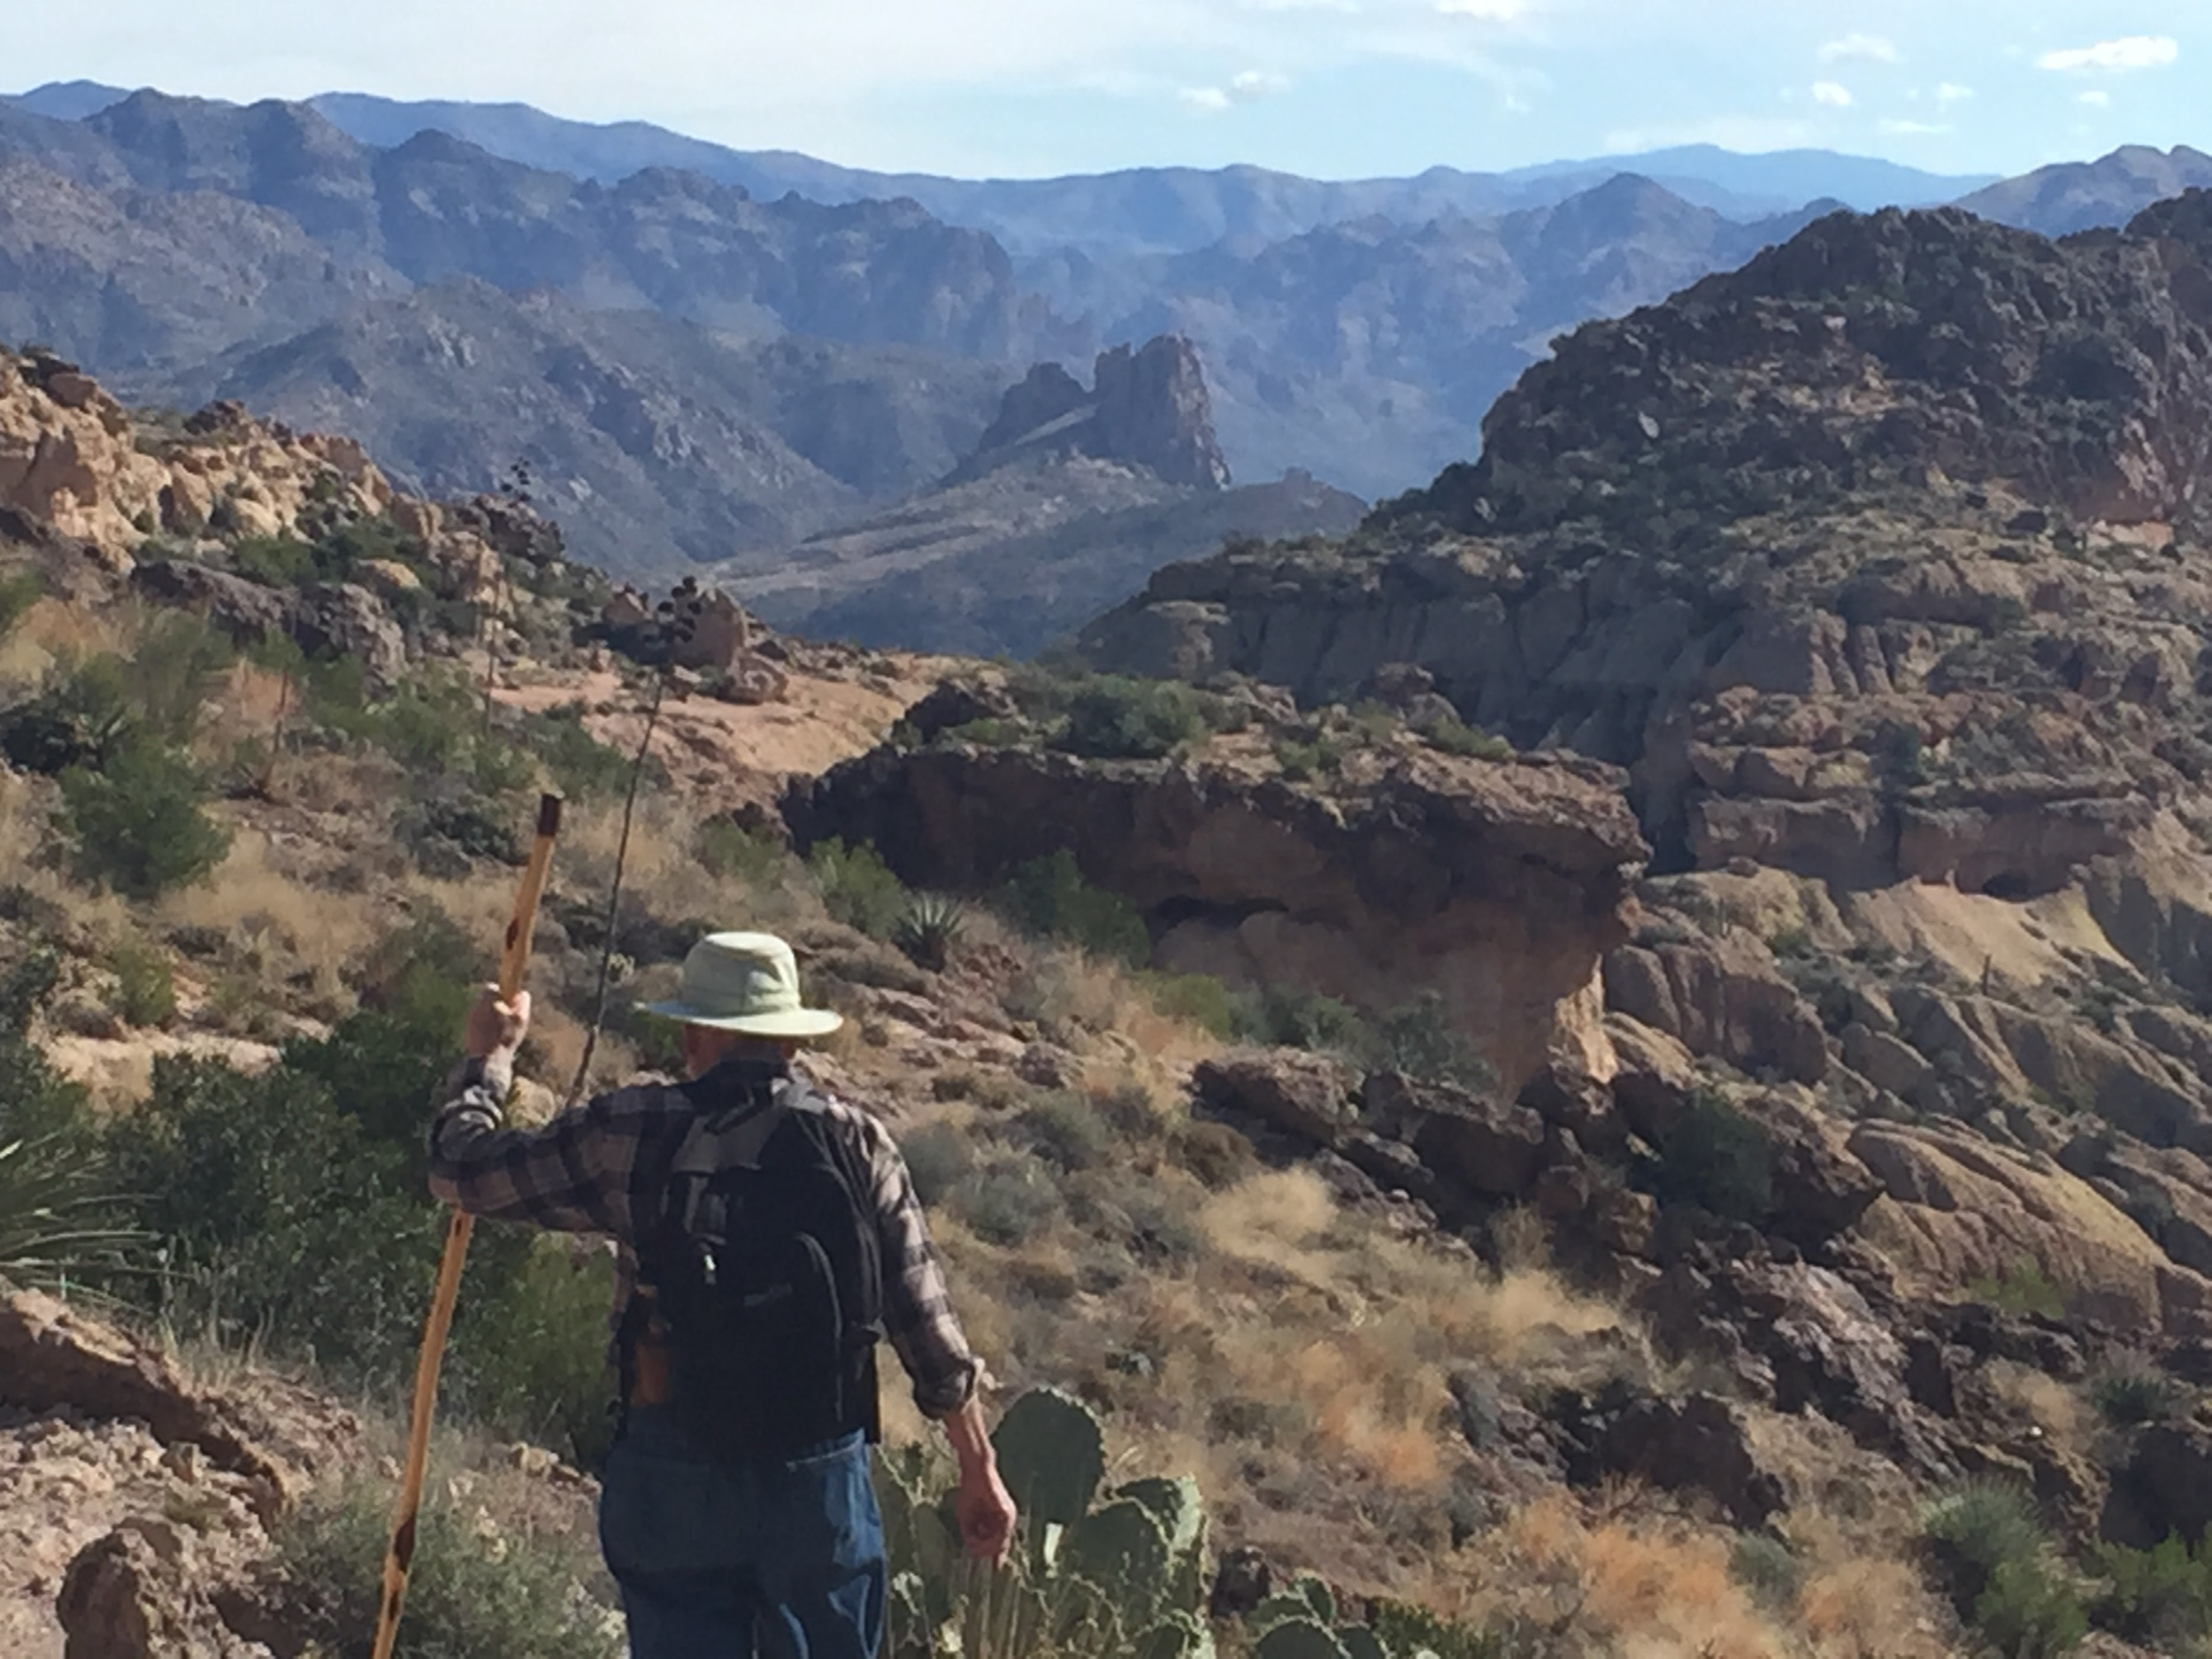 Rolfing® Resources images - Wilderness hike